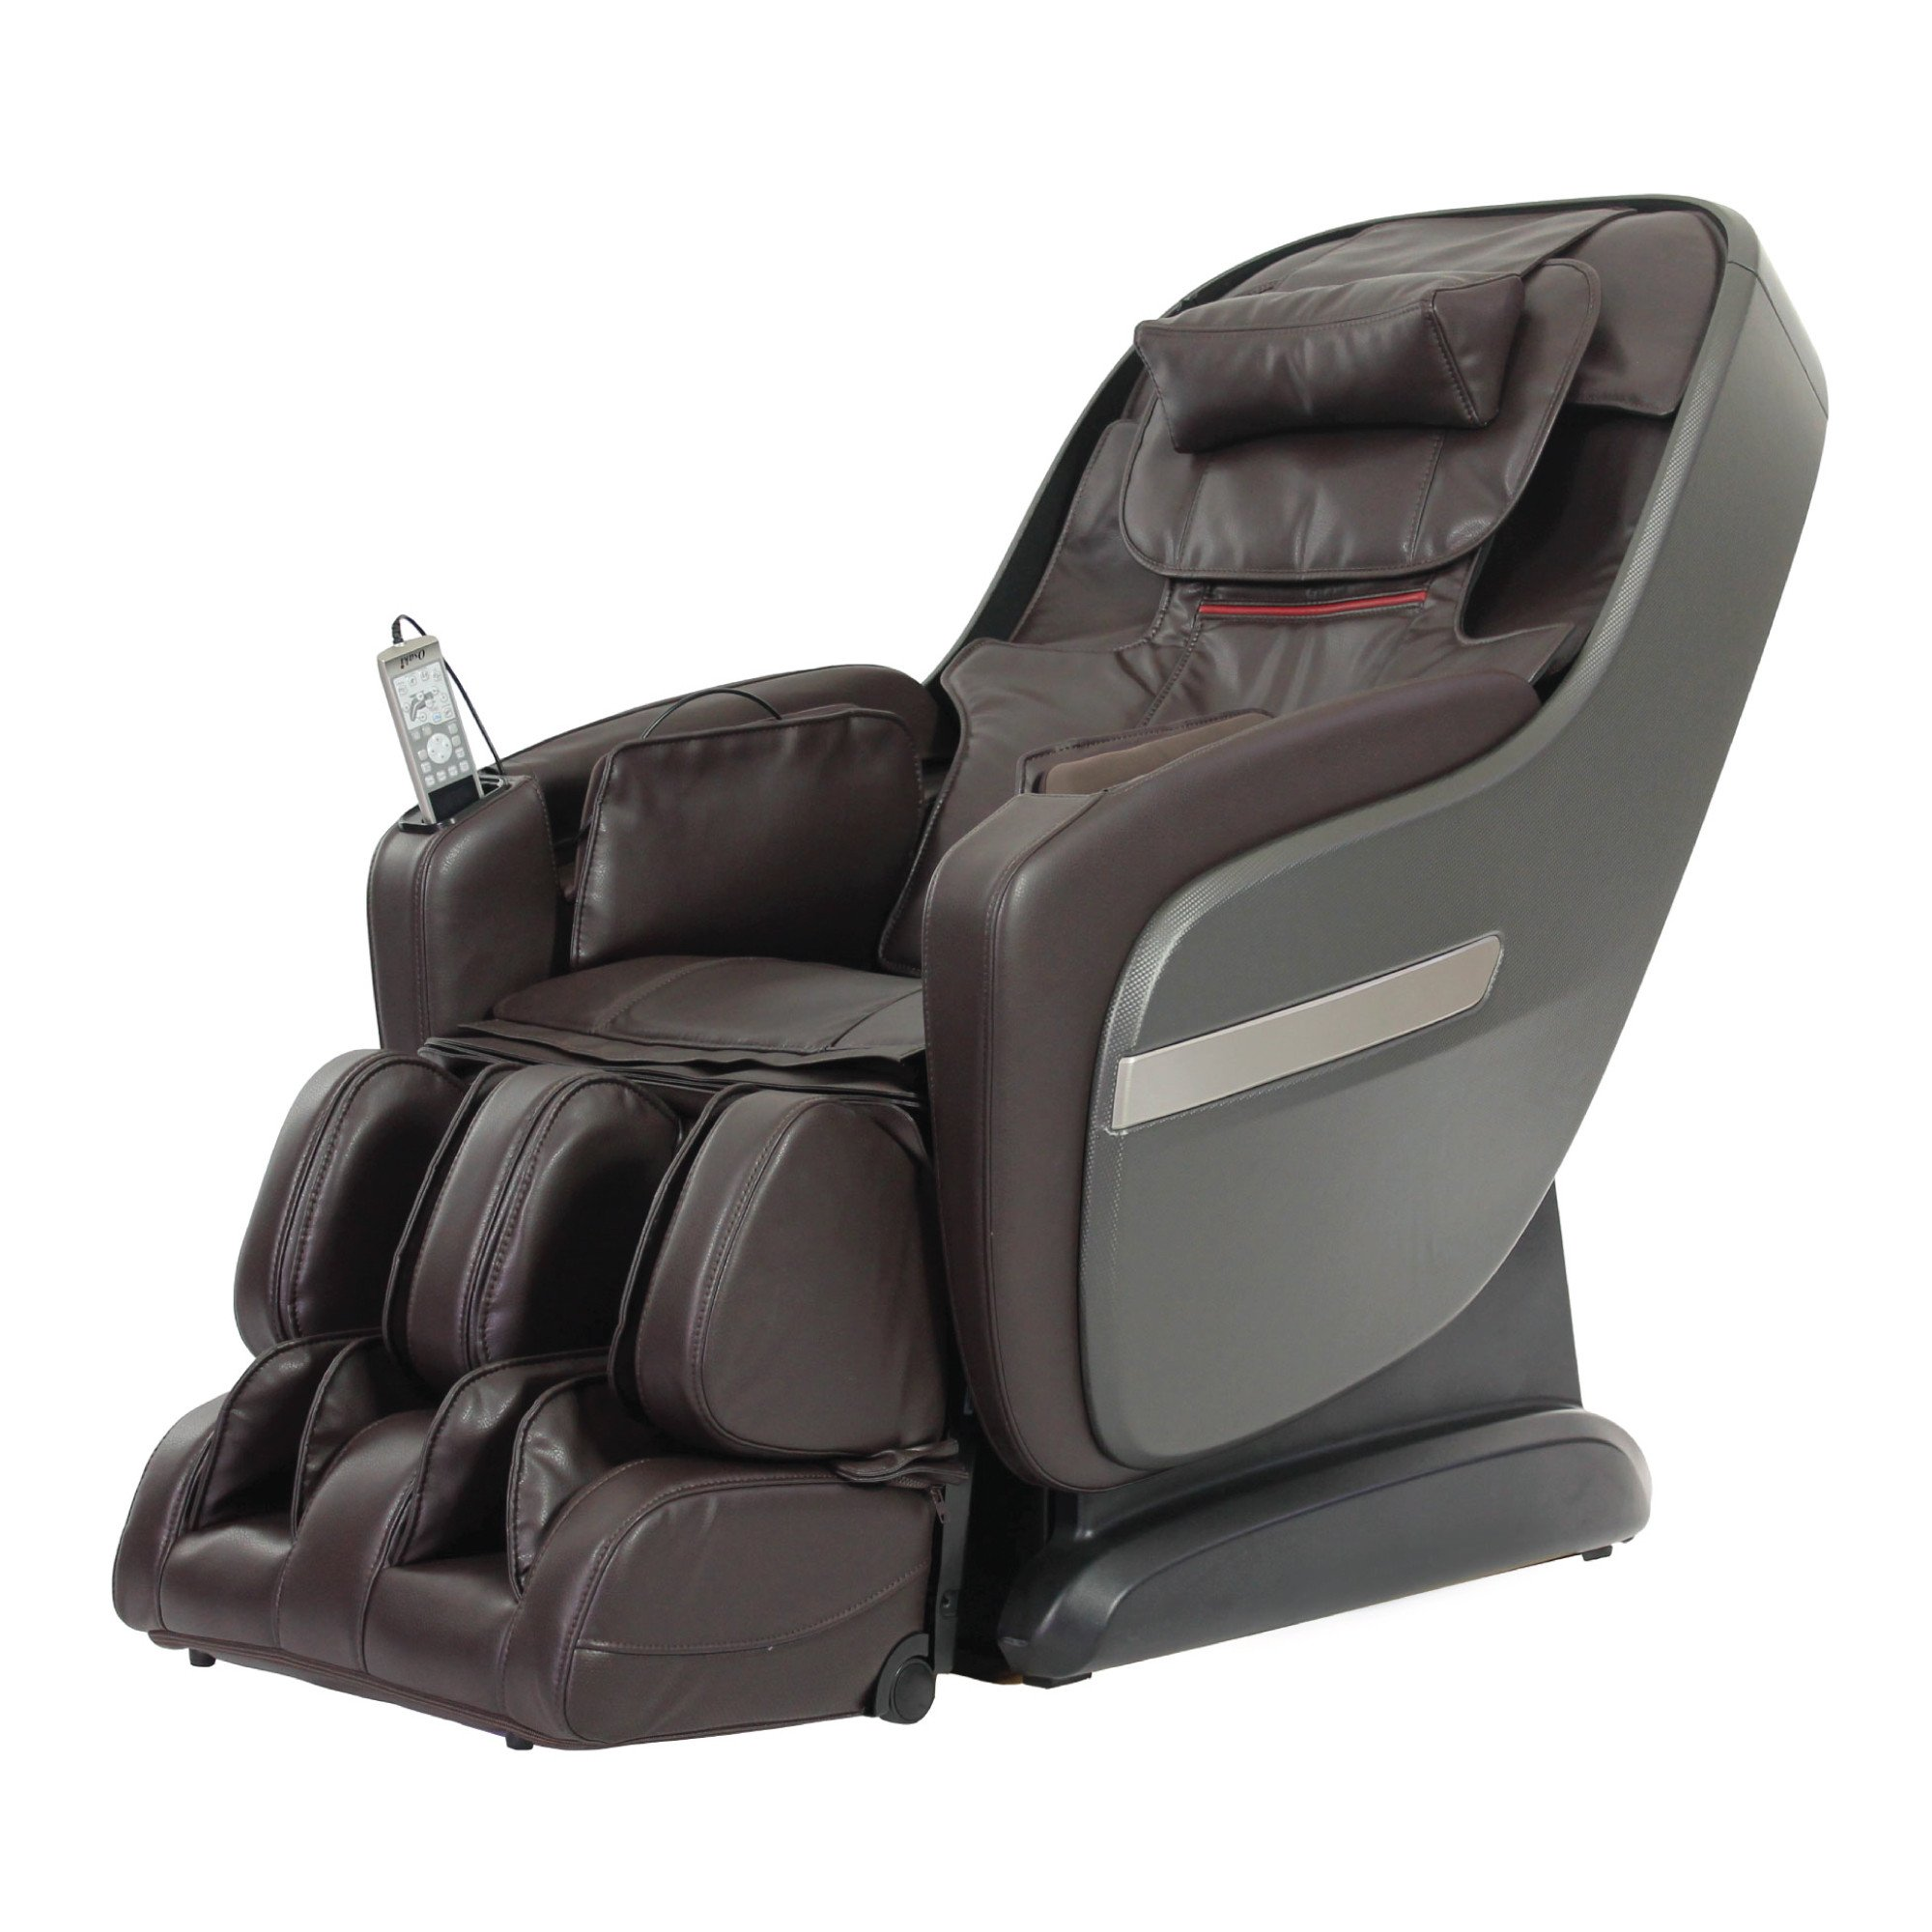 Titan Alpine Massage Chair - Brown - Front Angle View